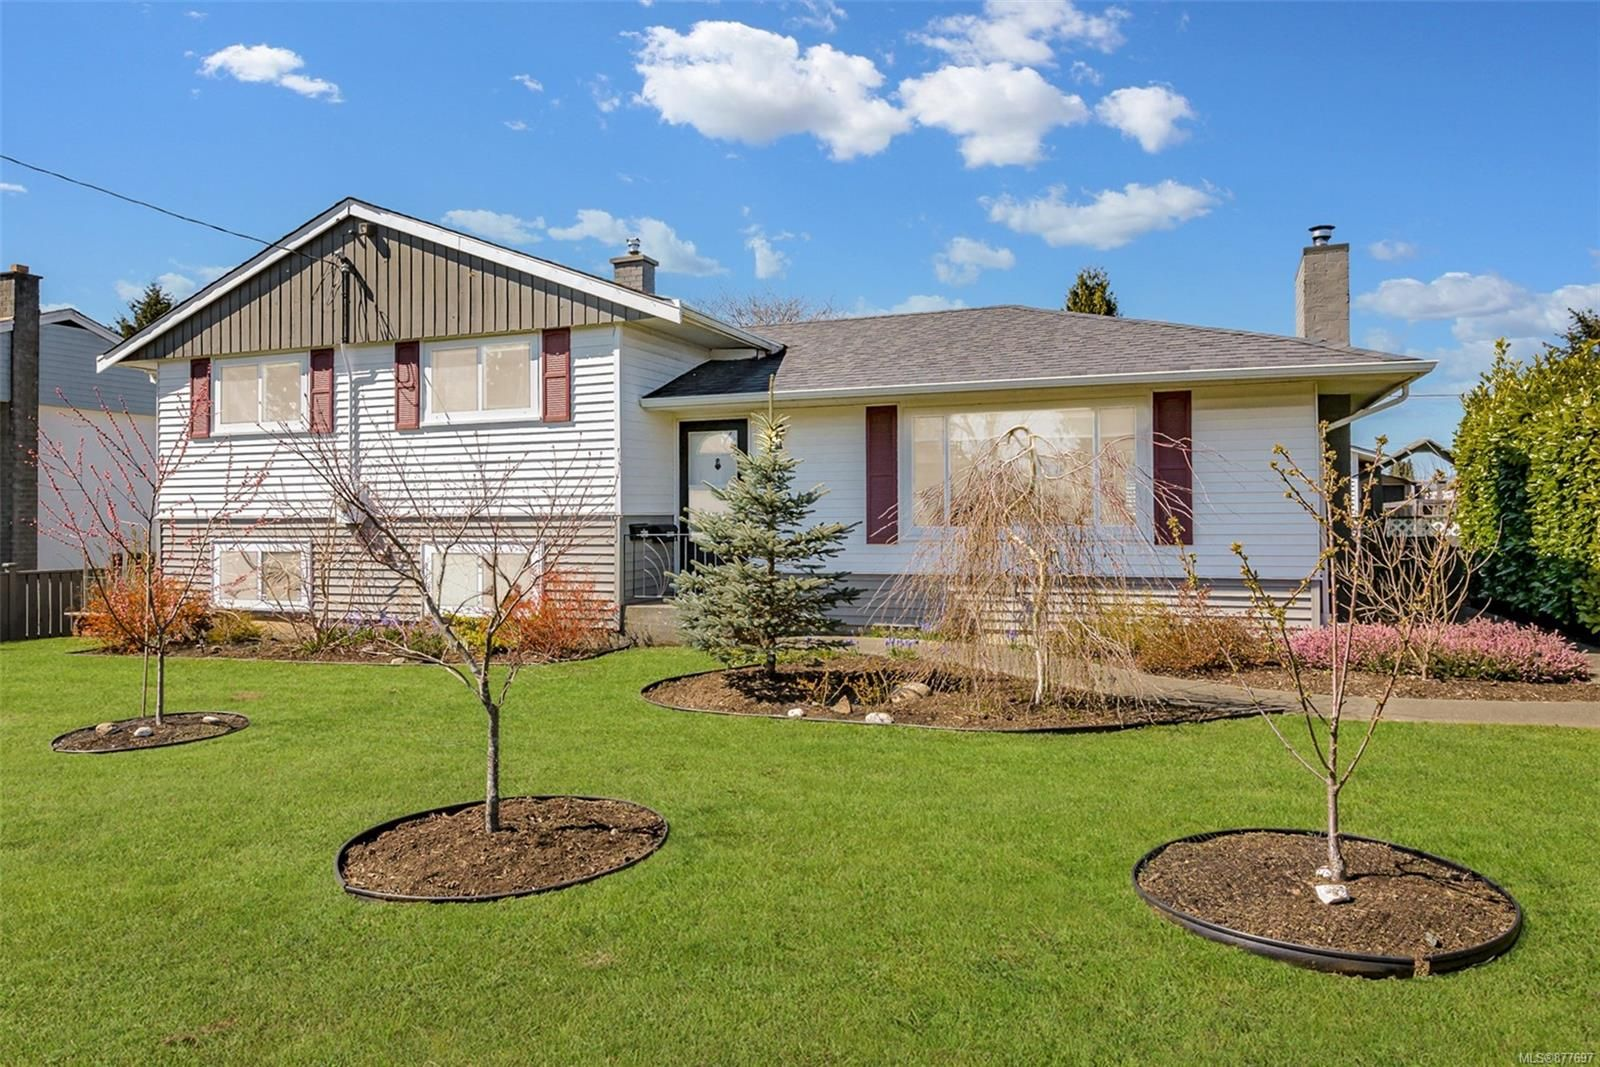 Main Photo: 661 17th St in : CV Courtenay City House for sale (Comox Valley)  : MLS®# 877697